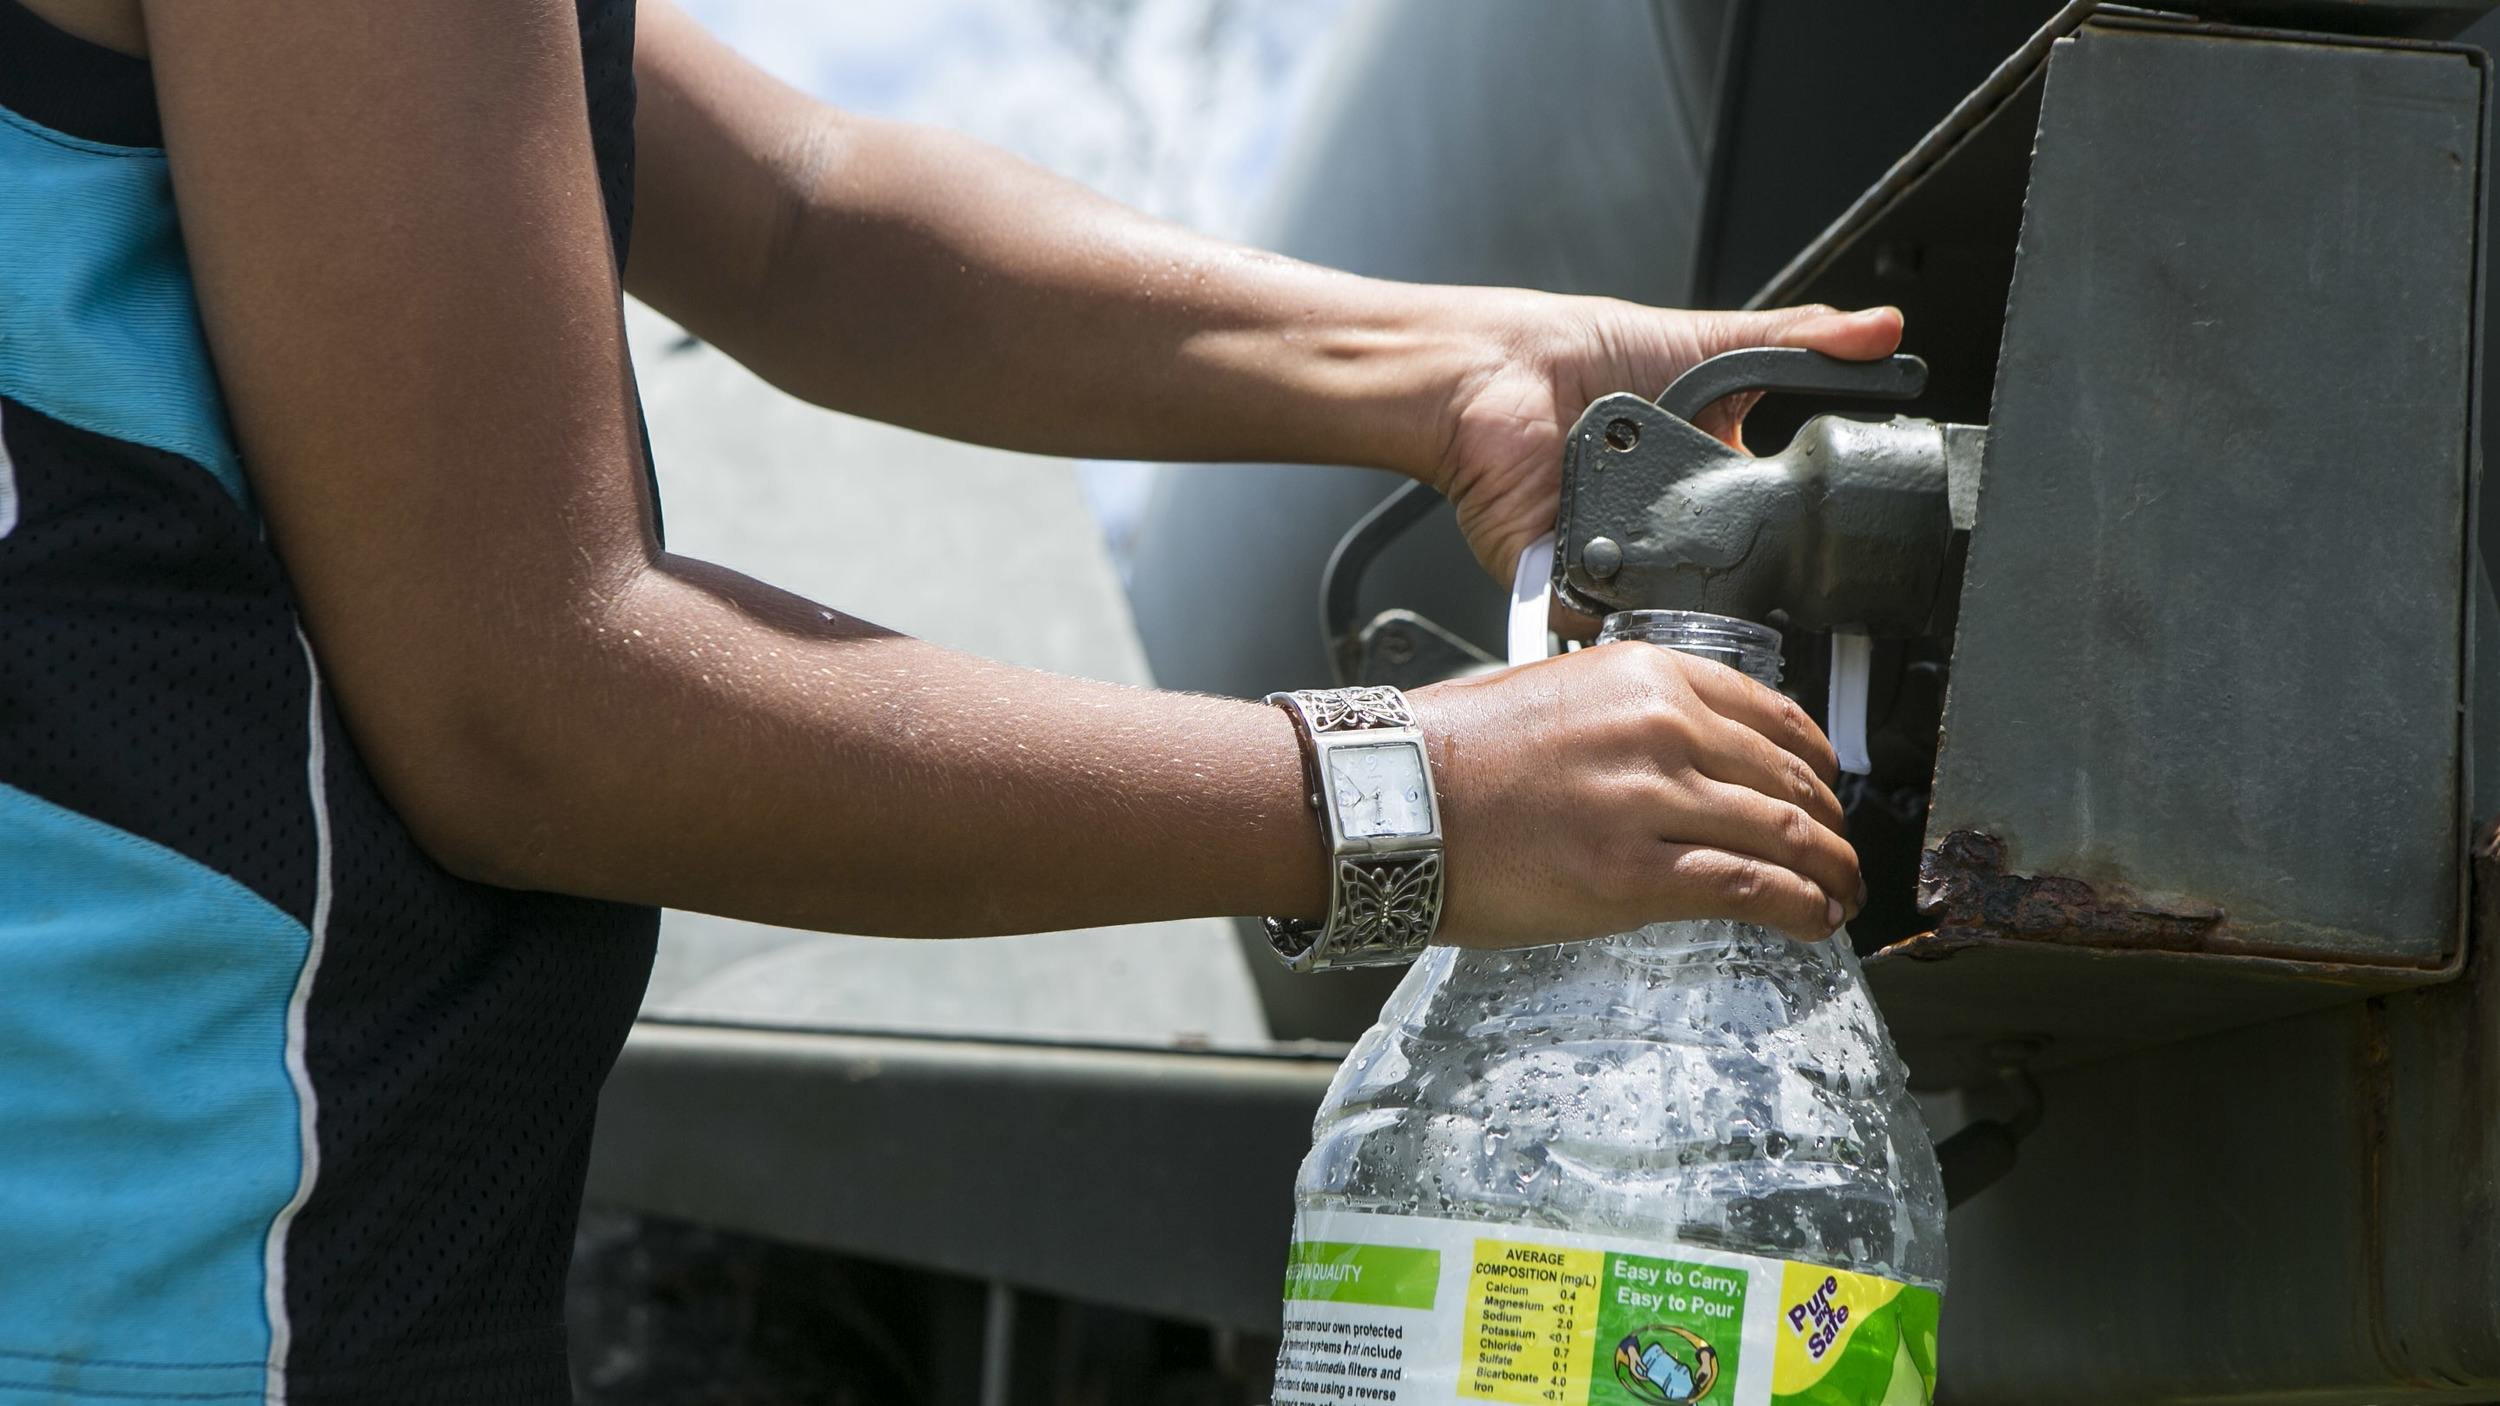 The importance of water purification becomes clear in places without clean drinking sources